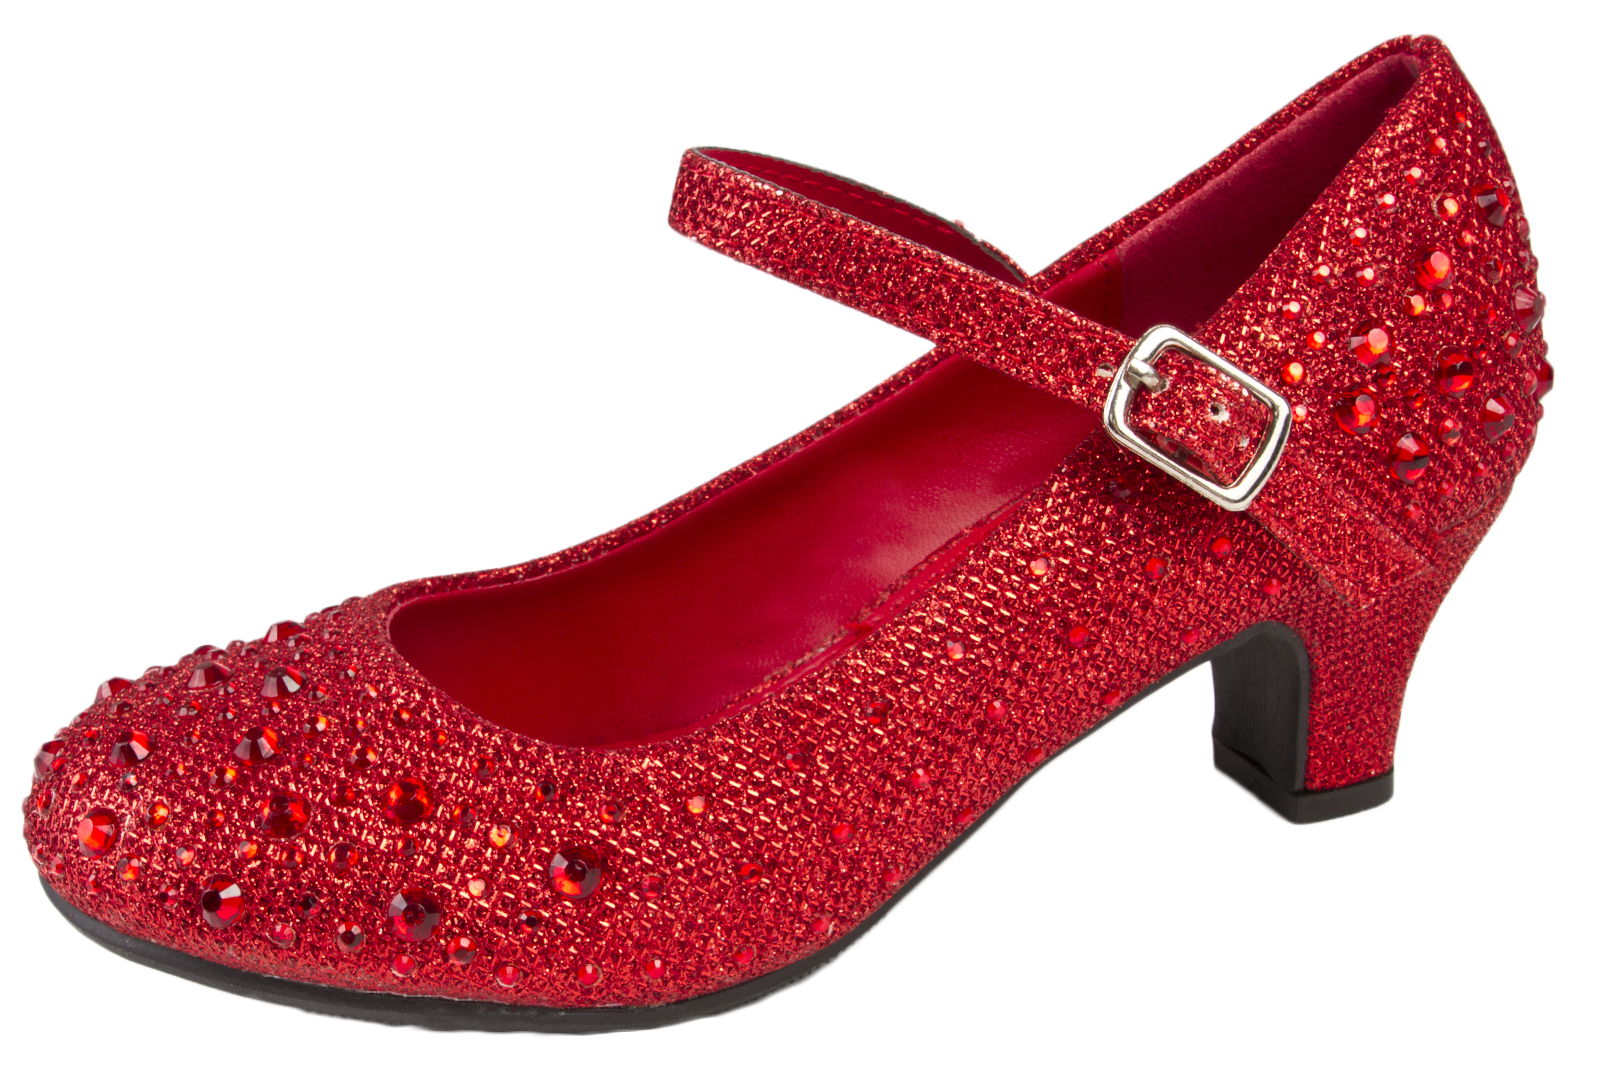 Bally Shoes For Girls